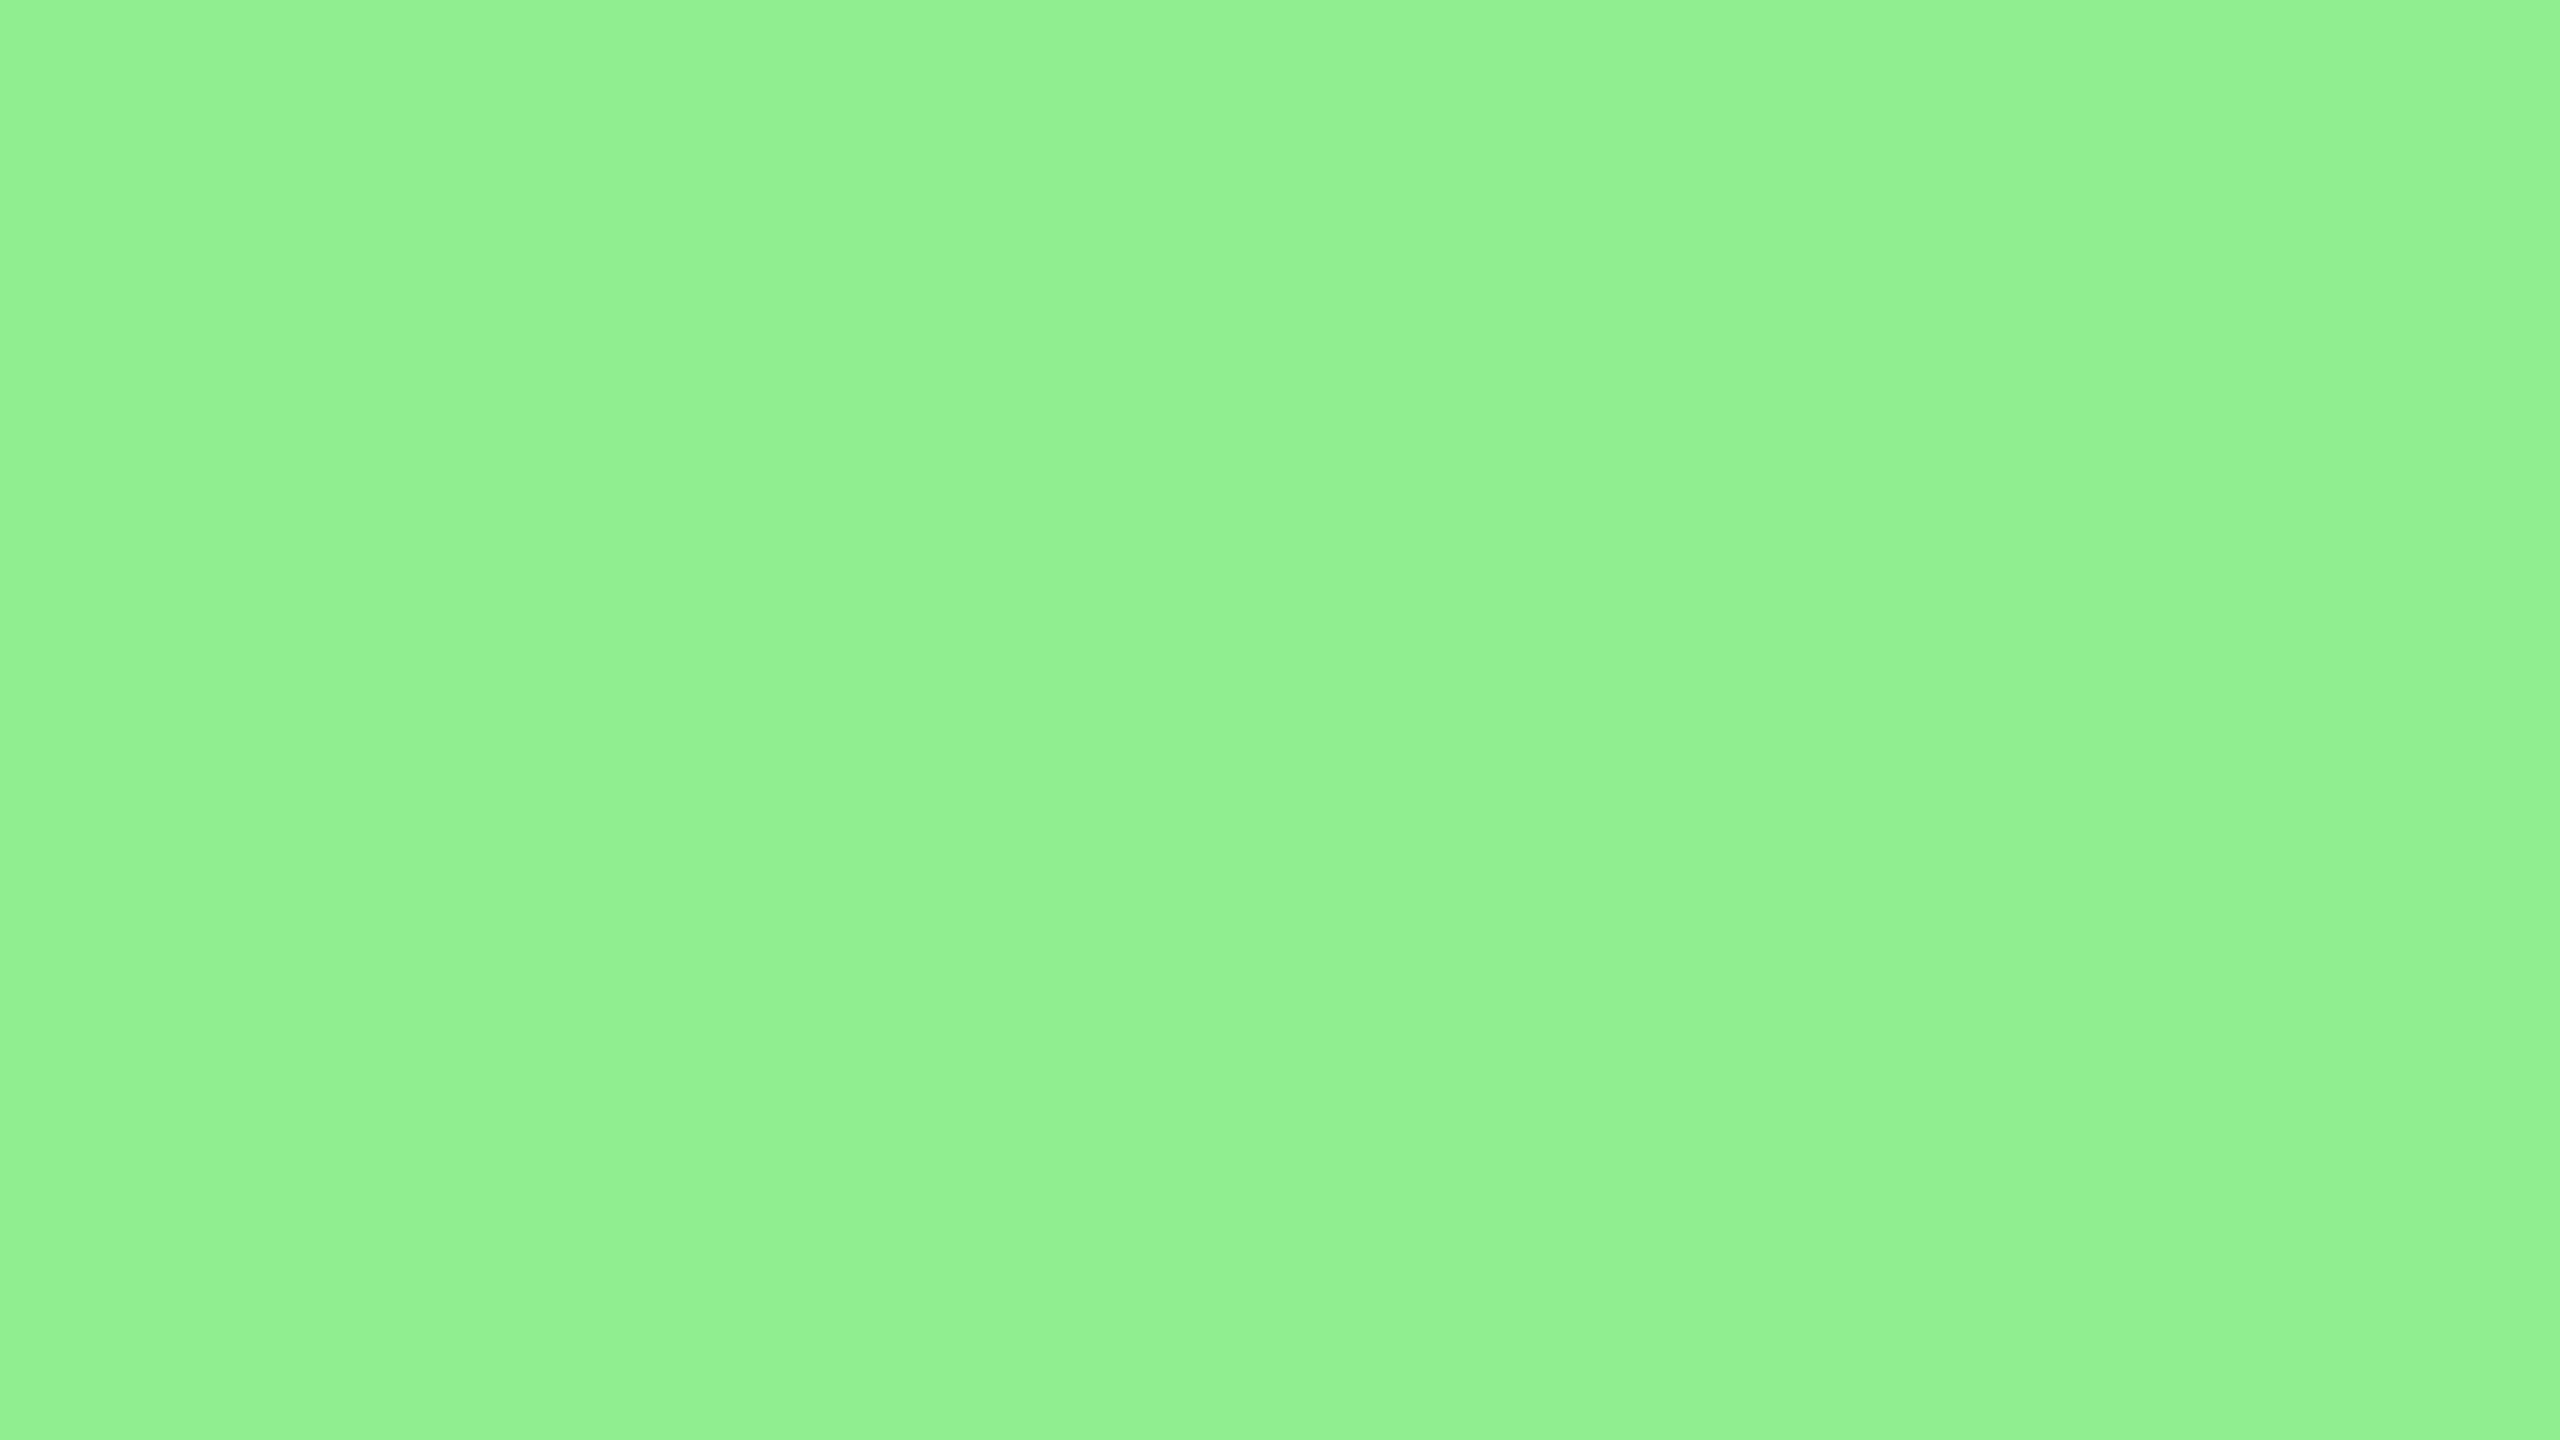 2560x1440 resolution Light Green solid color background view and 2560x1440